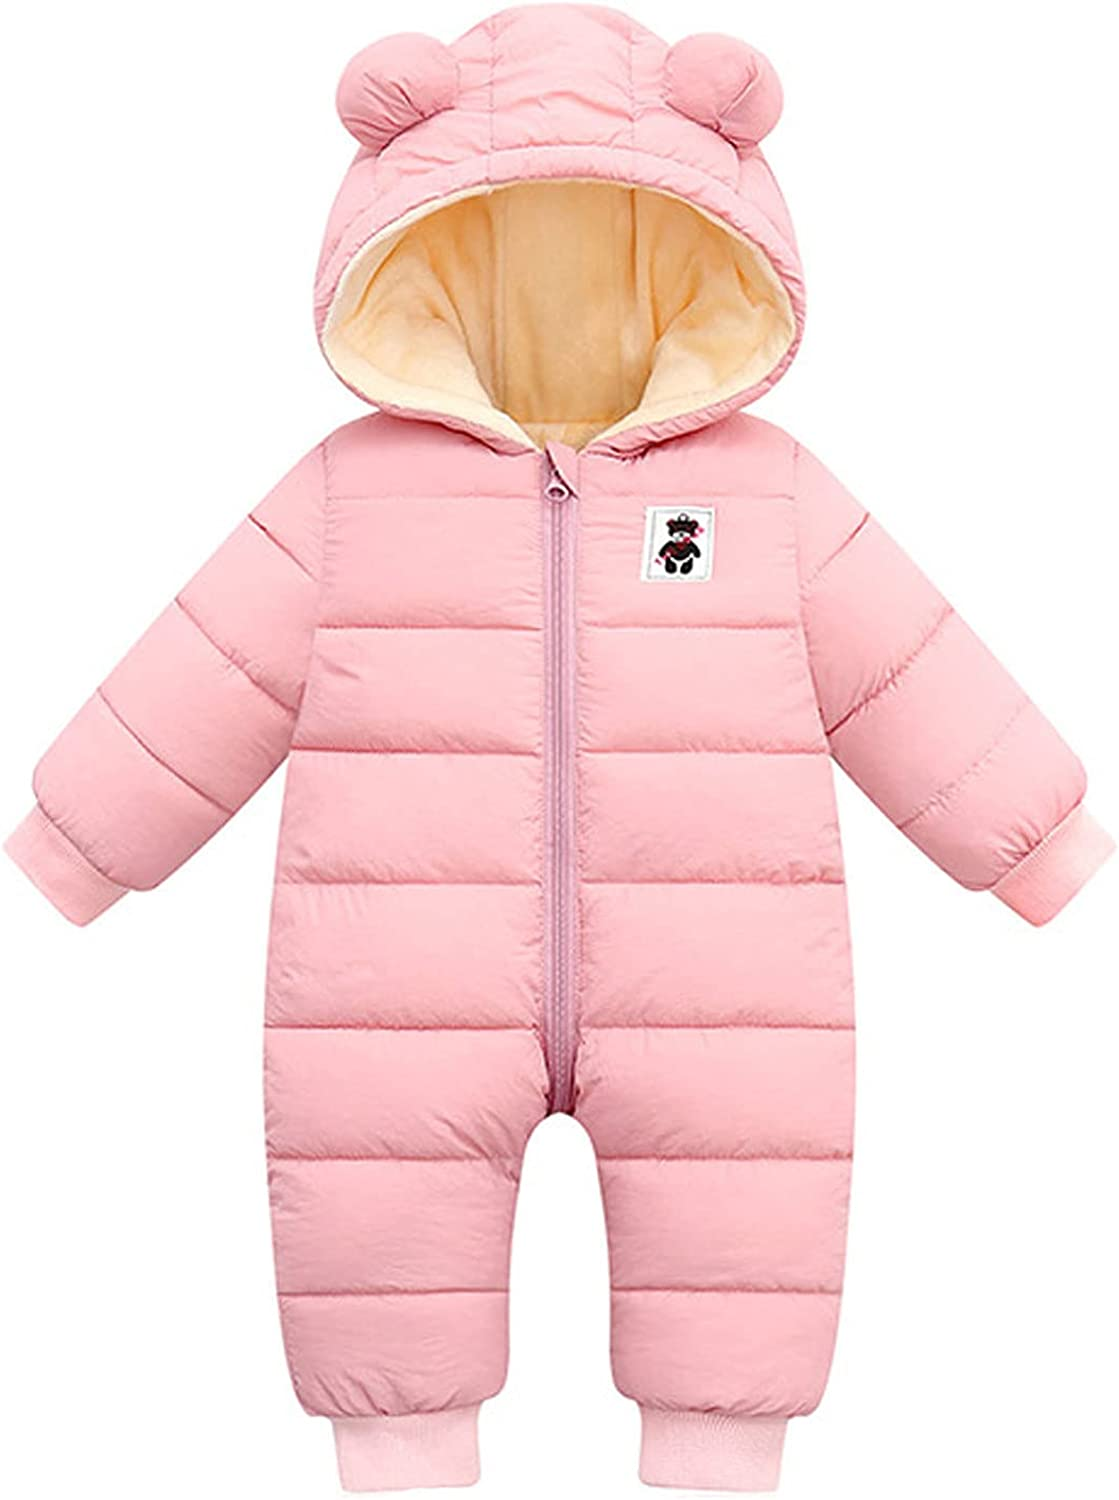 Family New product Halloween Costumes Baby Ranking TOP4 Girls Snowsuit Hooded Boys Warm